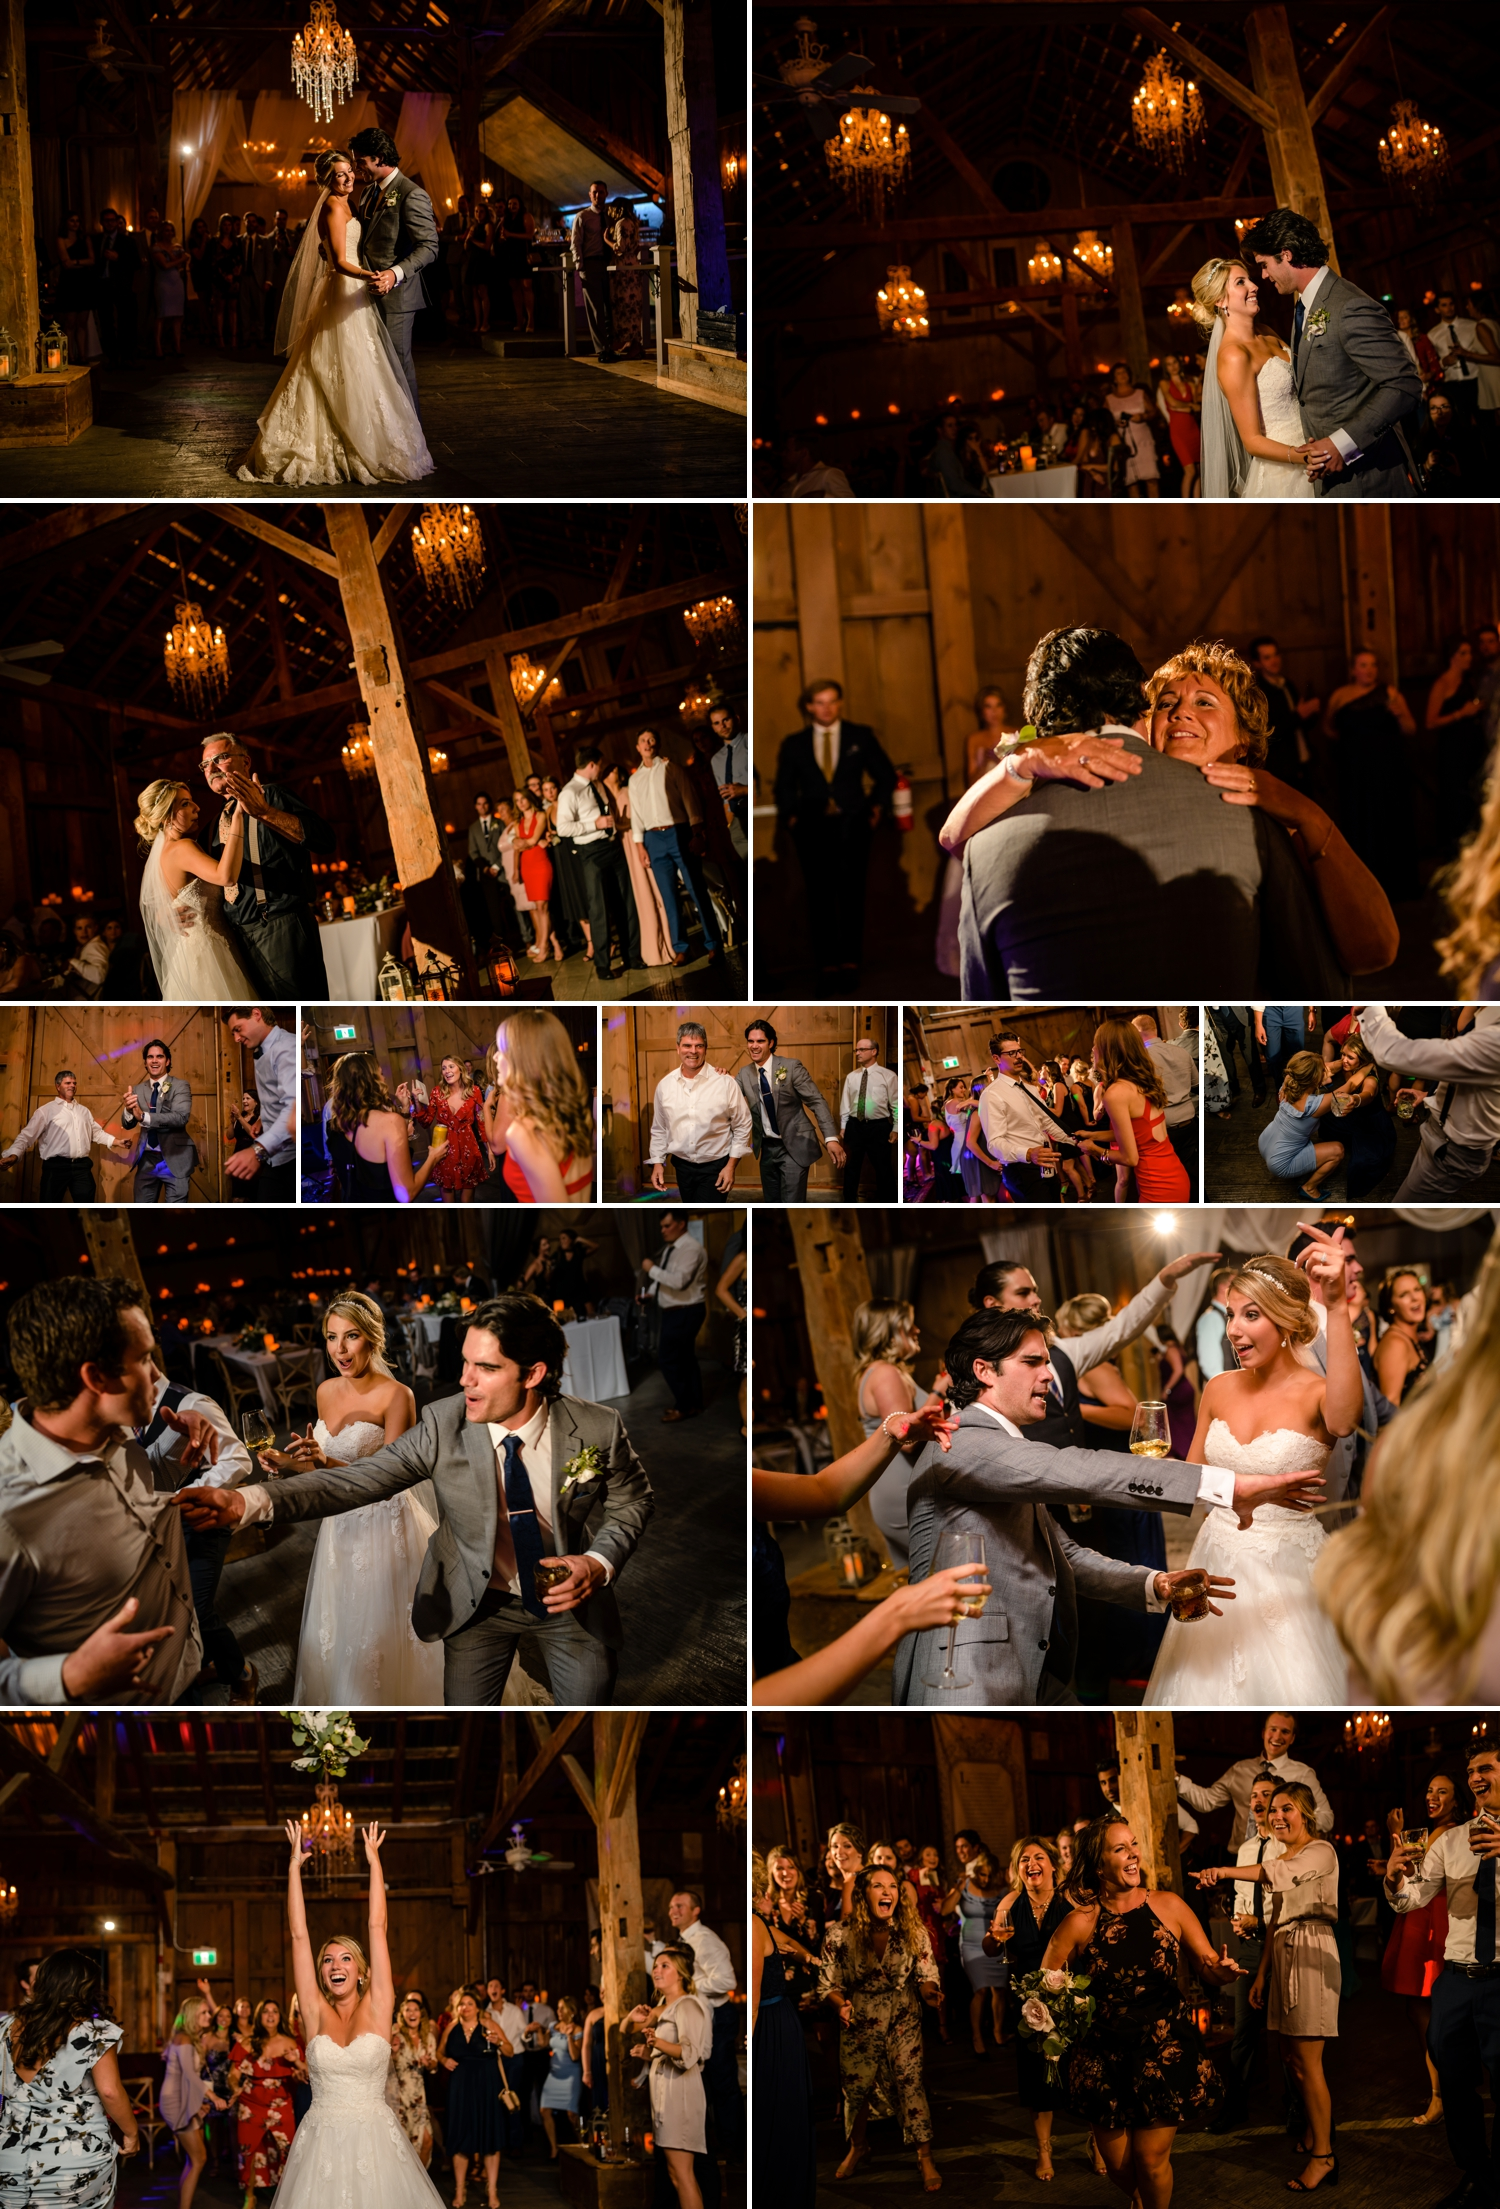 candid-and-natural-moments-on-the-dance-floor-during-an-evermore-weddings-and-events-in-almonte-ontario.jpg.jpg